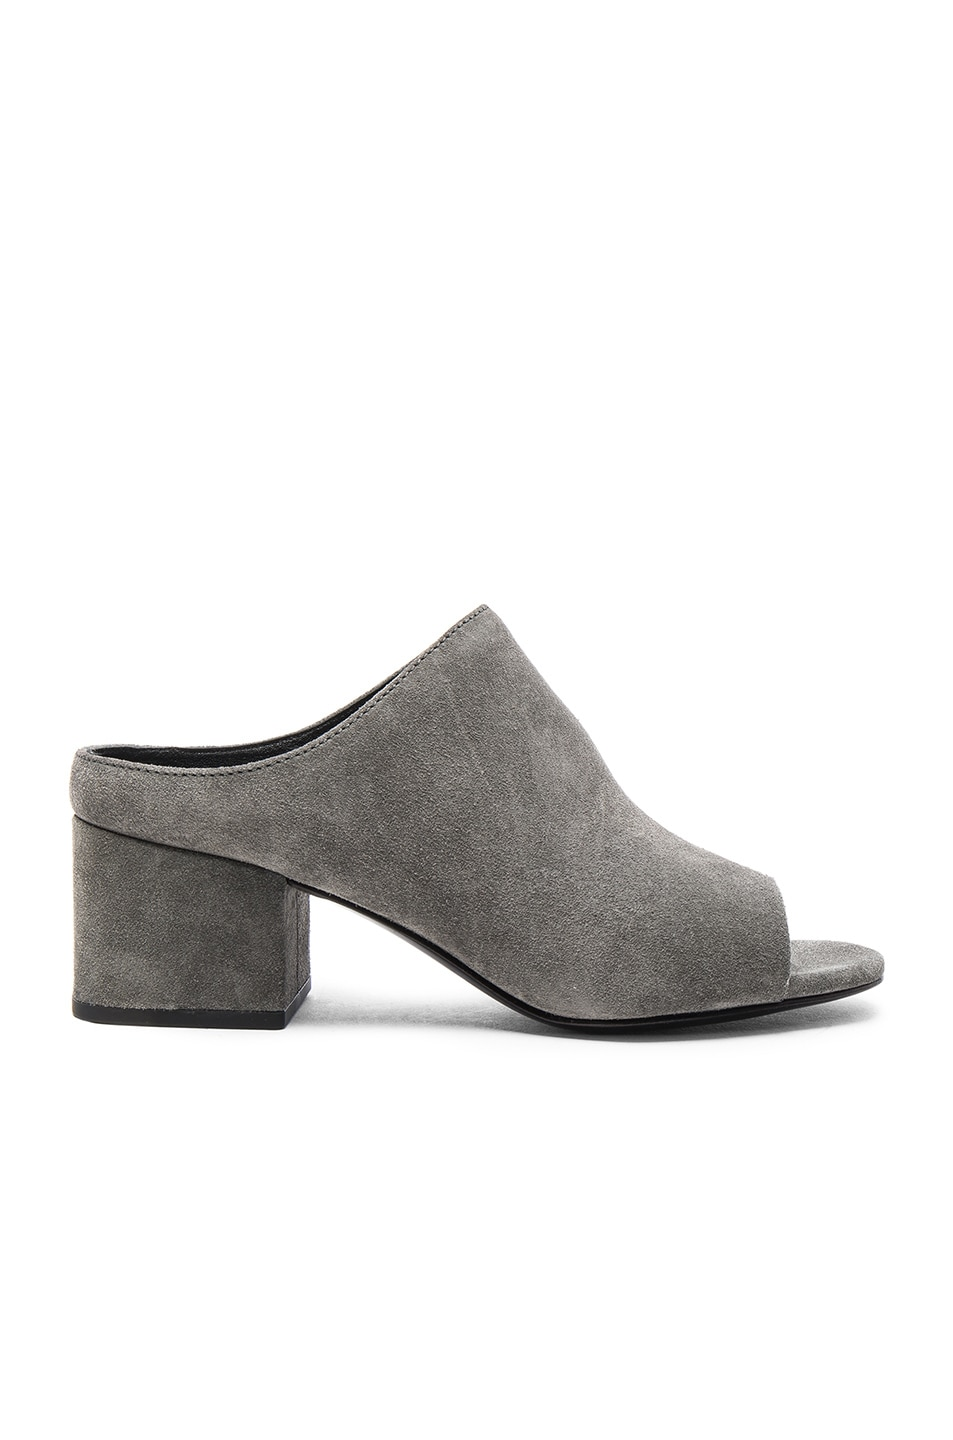 Image 1 of 3.1 phillip lim Suede Cube Mules in Stone